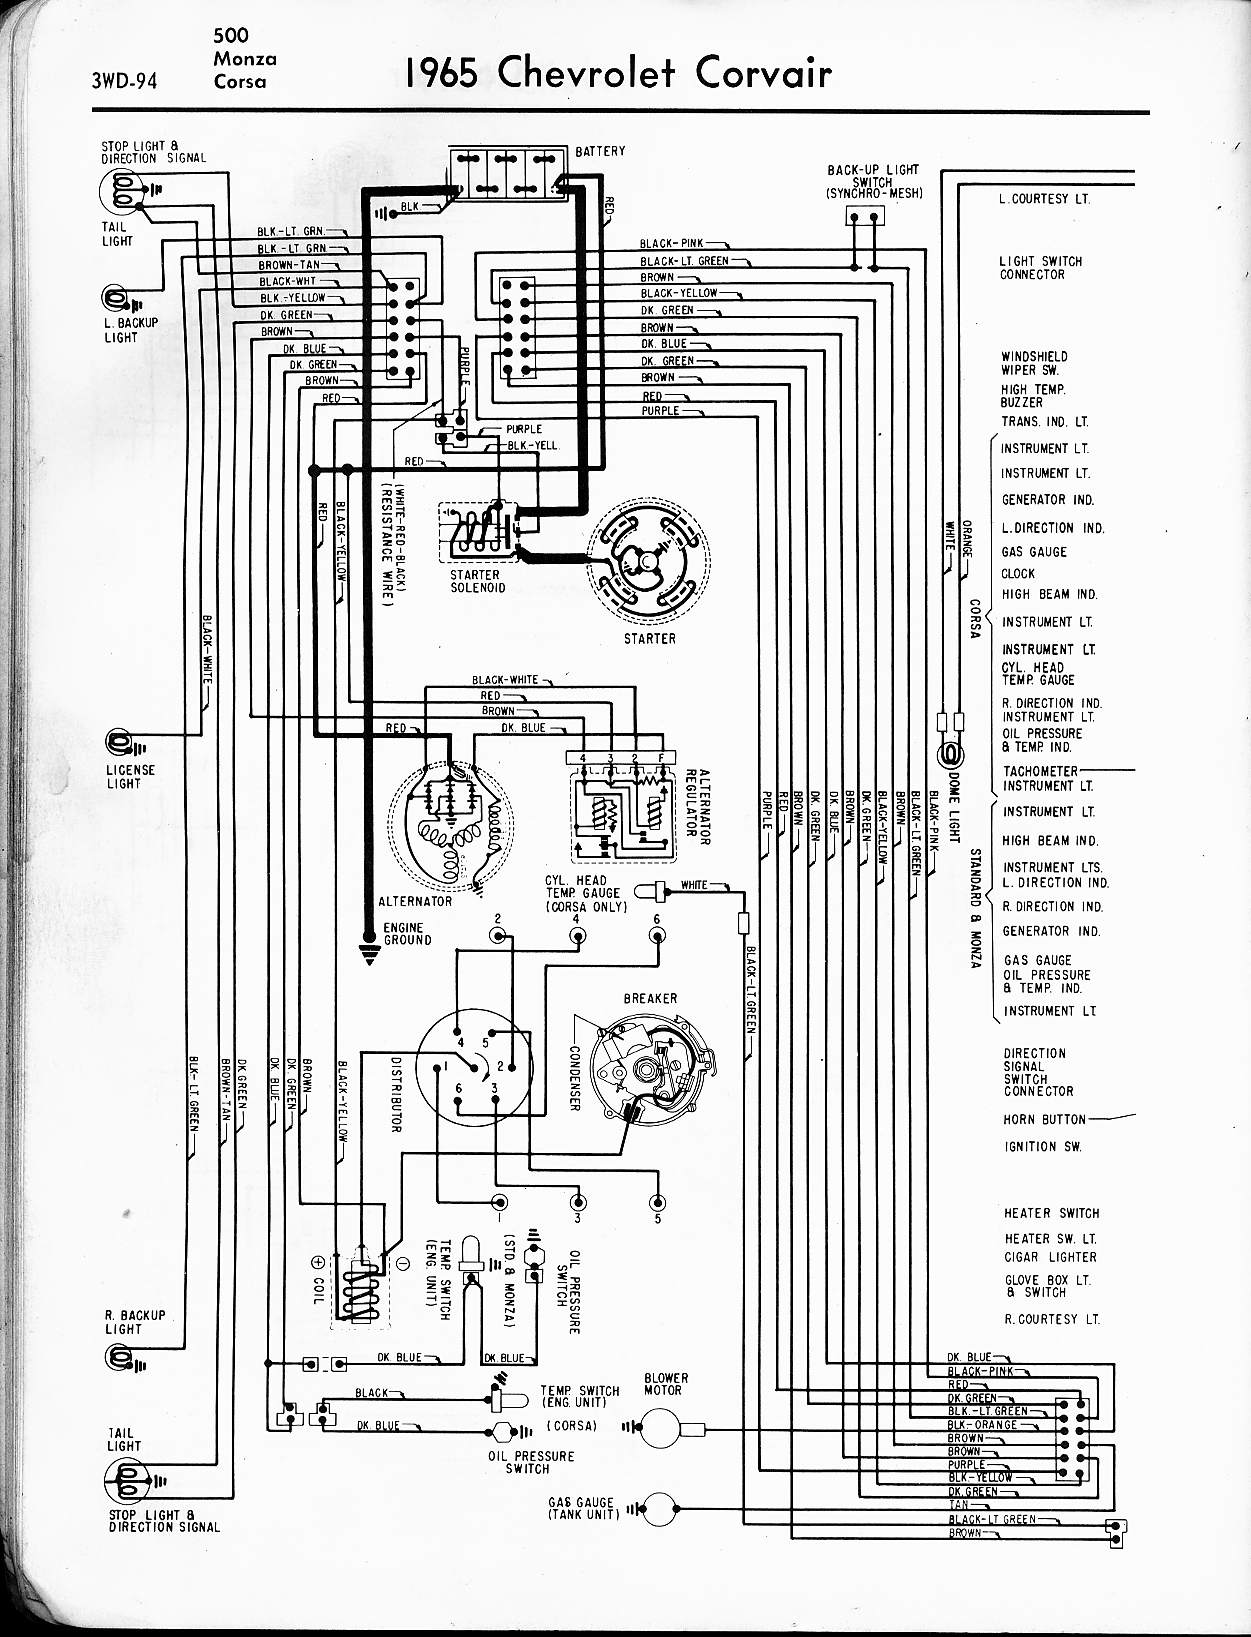 57 65 Chevy Wiring Diagrams 1967 Chevelle Diagram 1965 Corvair 500 Monza Corsa Left